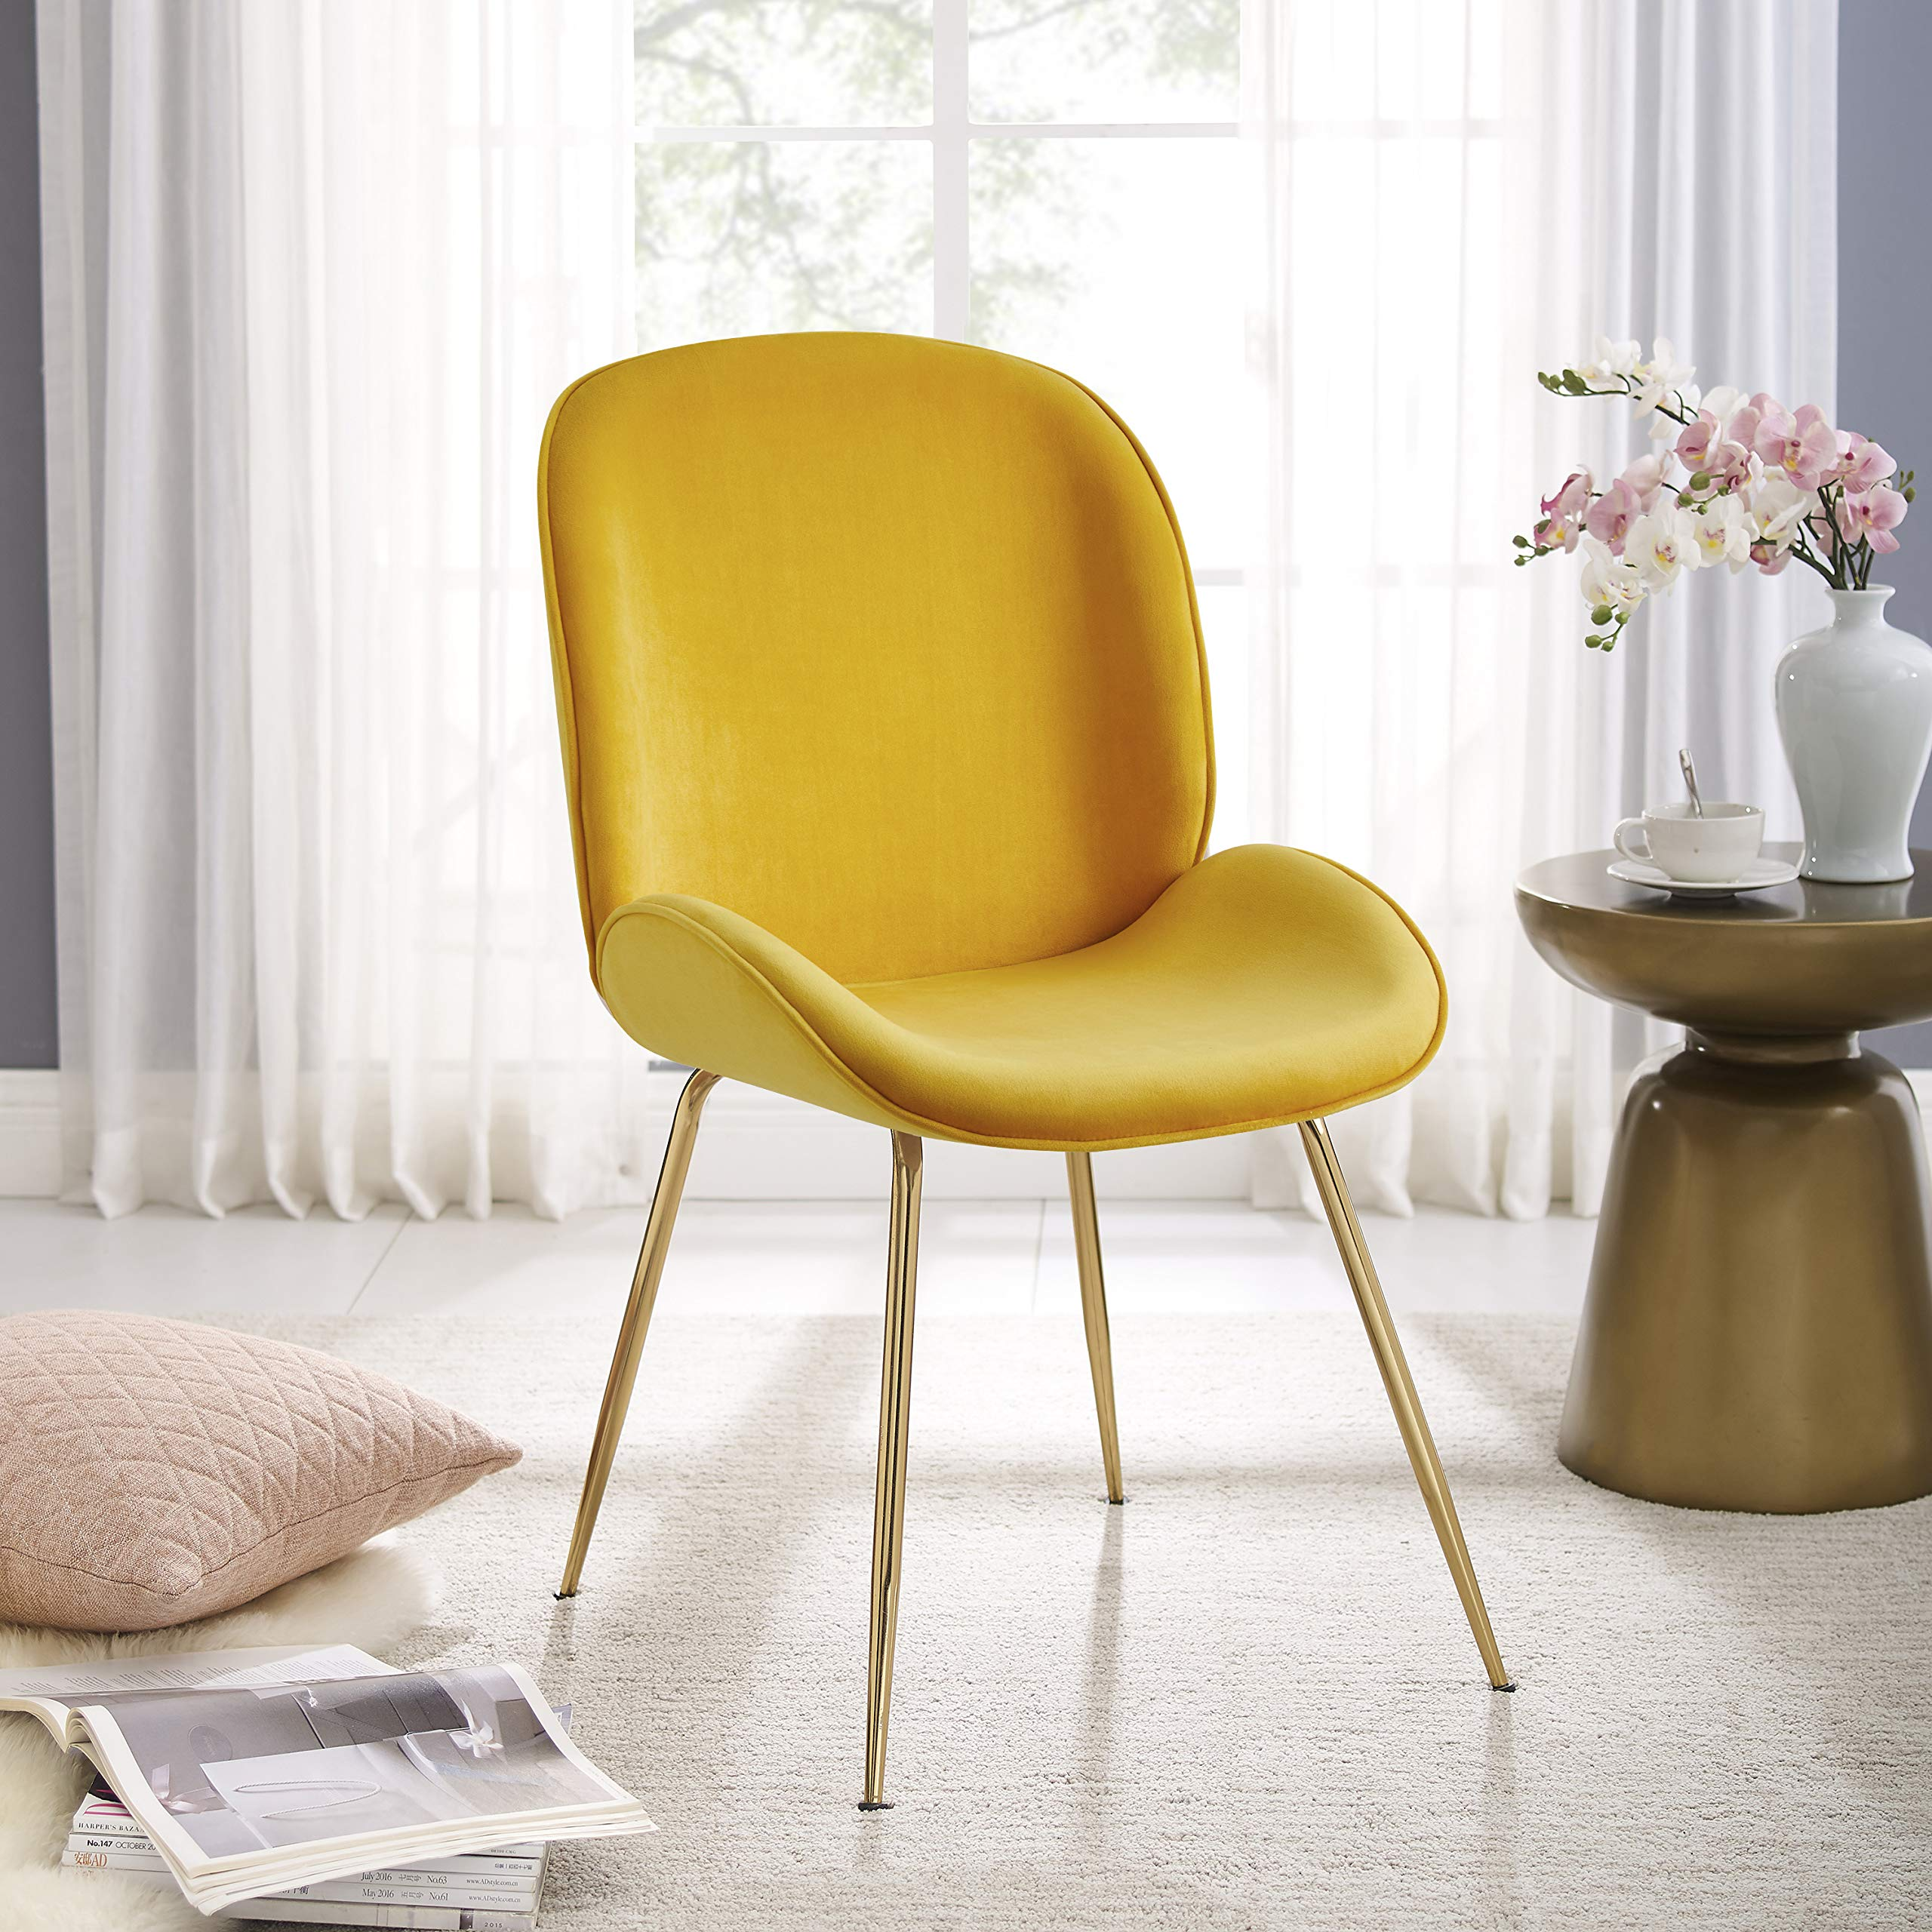 Art Leon Vanity Chair Modern Beetle Shell Upholstered Dining Chair With Gold Metal Legs Makeup Velvet Chair For Living Buy Online In Dominica At Dominica Desertcart Com Productid 216951247